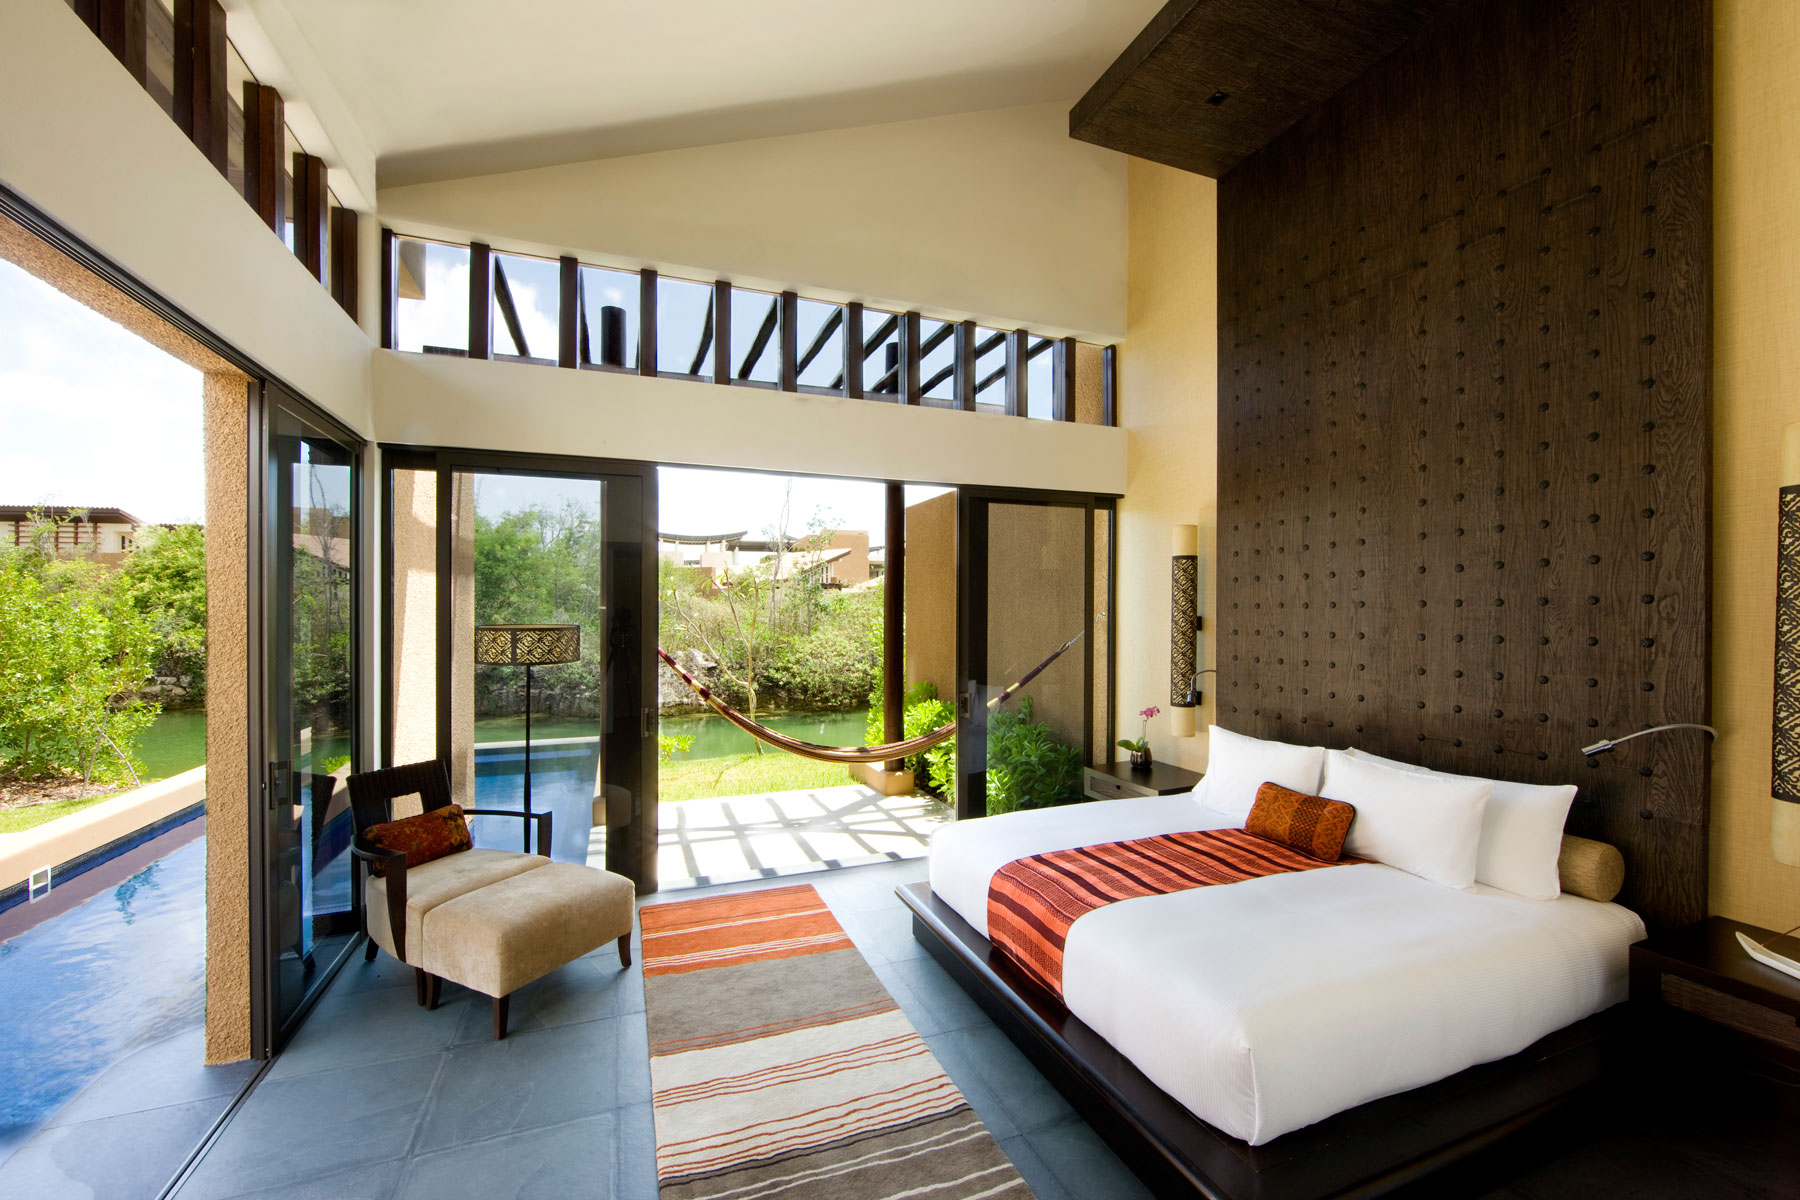 9_24-BTMXMY_SG_0609_Courtyard_Pool_Villa_Bedroom_007.jpg